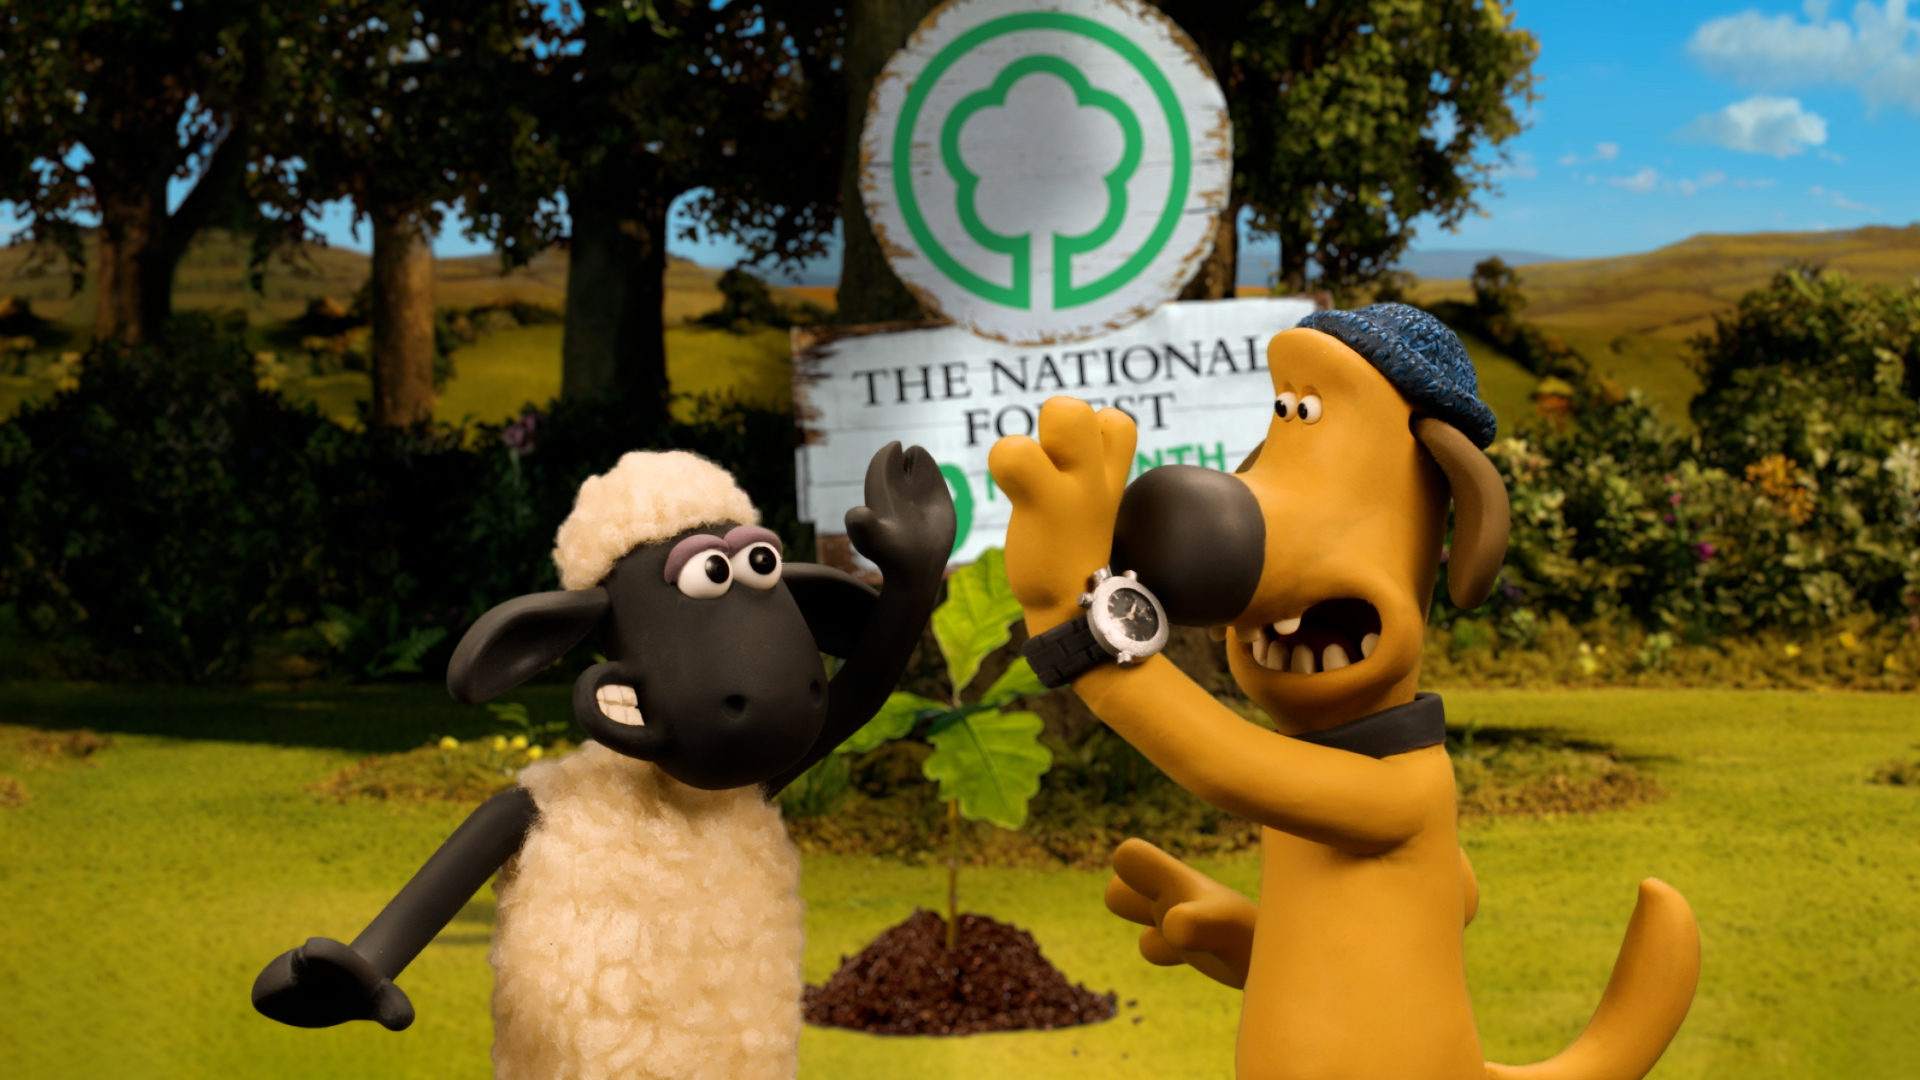 Shaun The Sheep and Bitzer